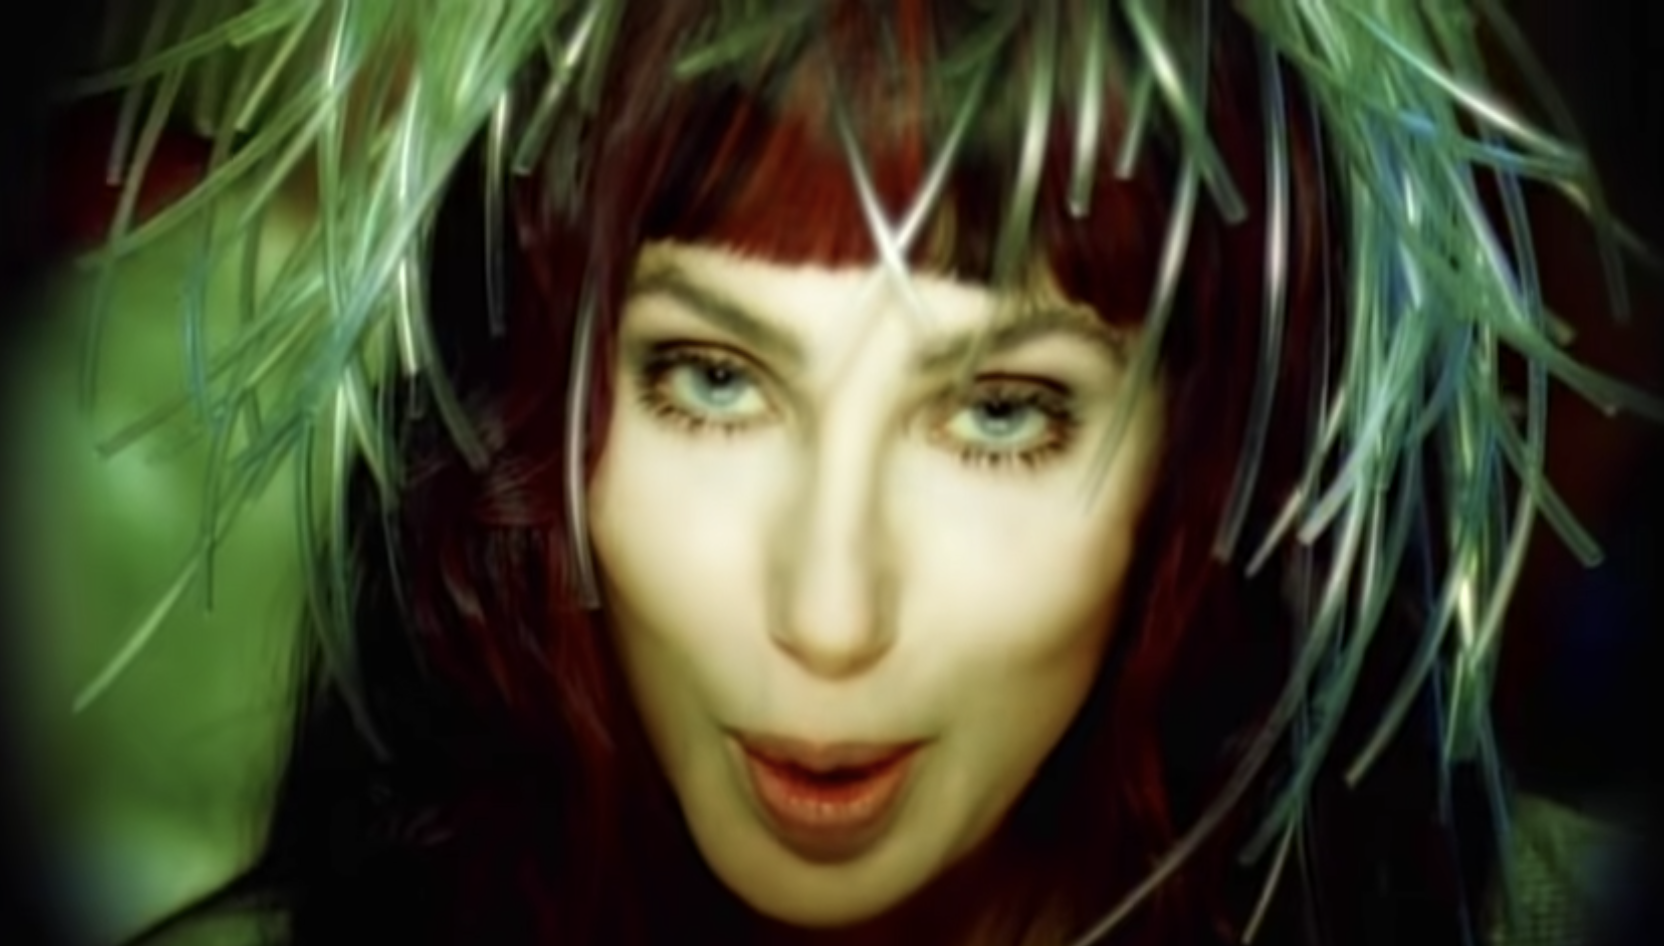 Cher singing in the music video with feathers on her head